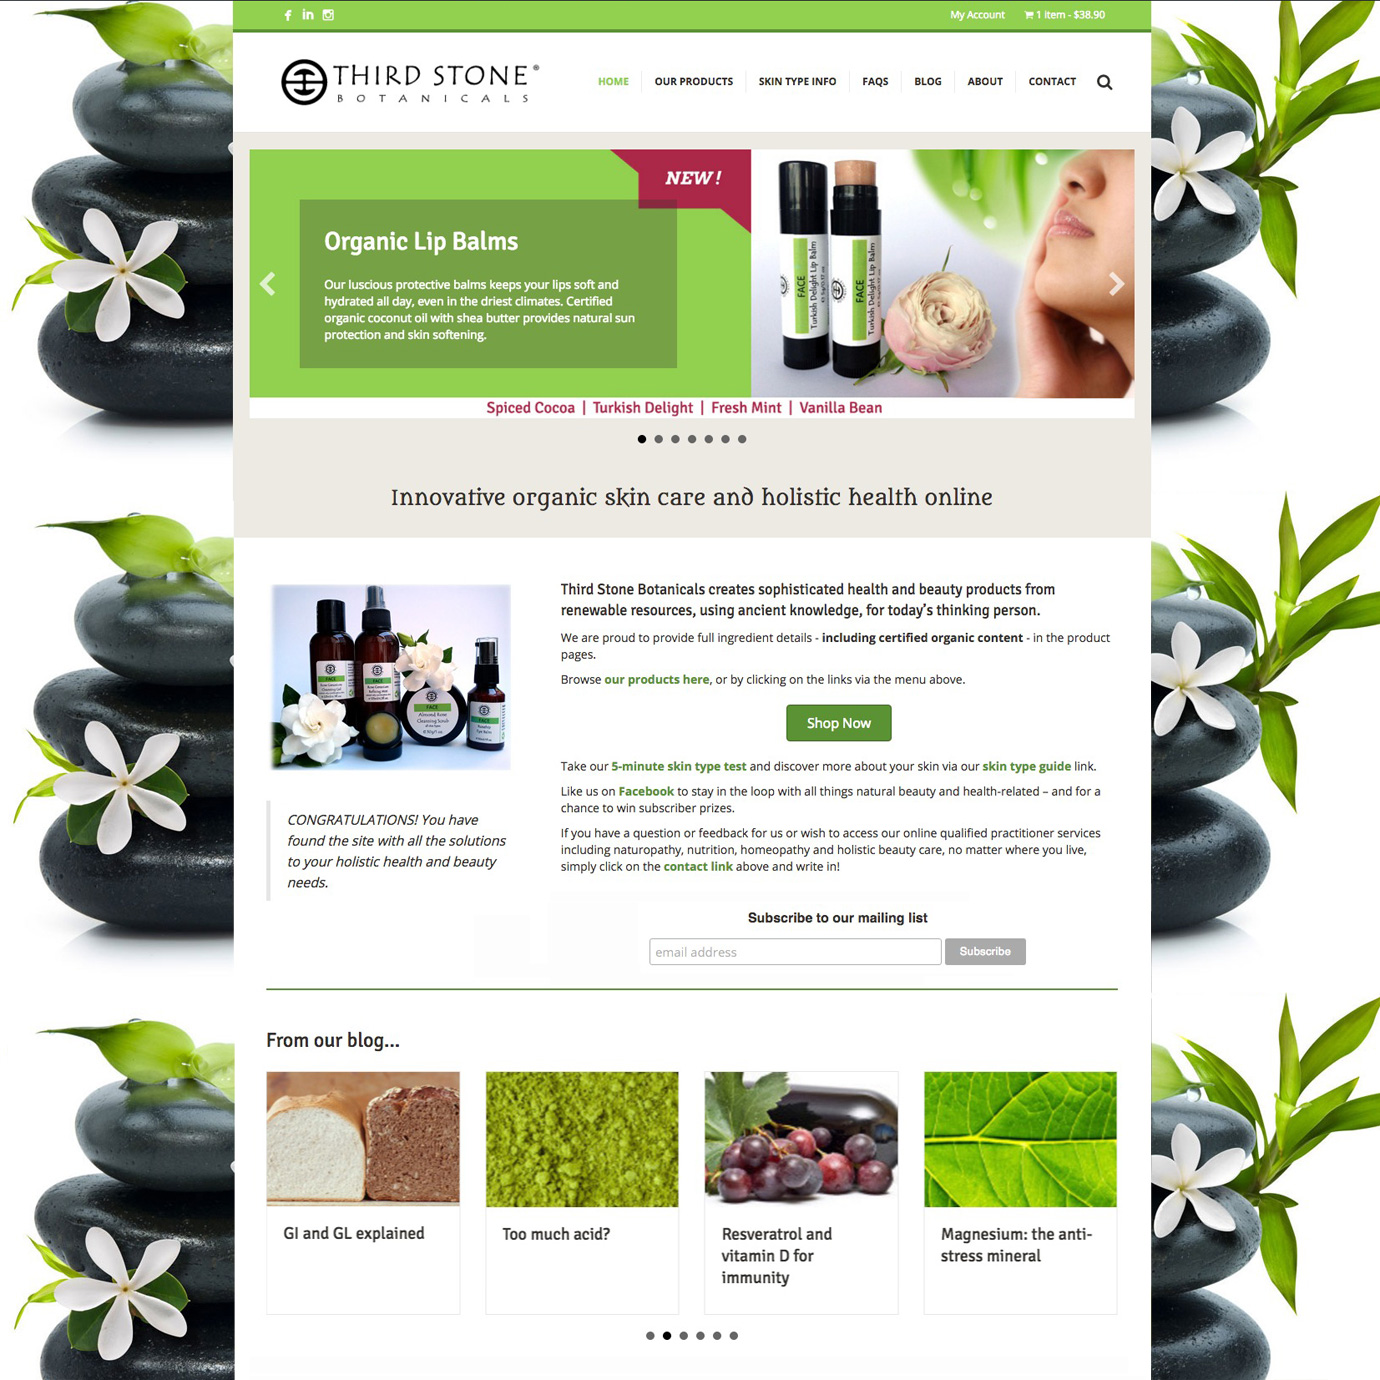 Third Stone Botanicals website